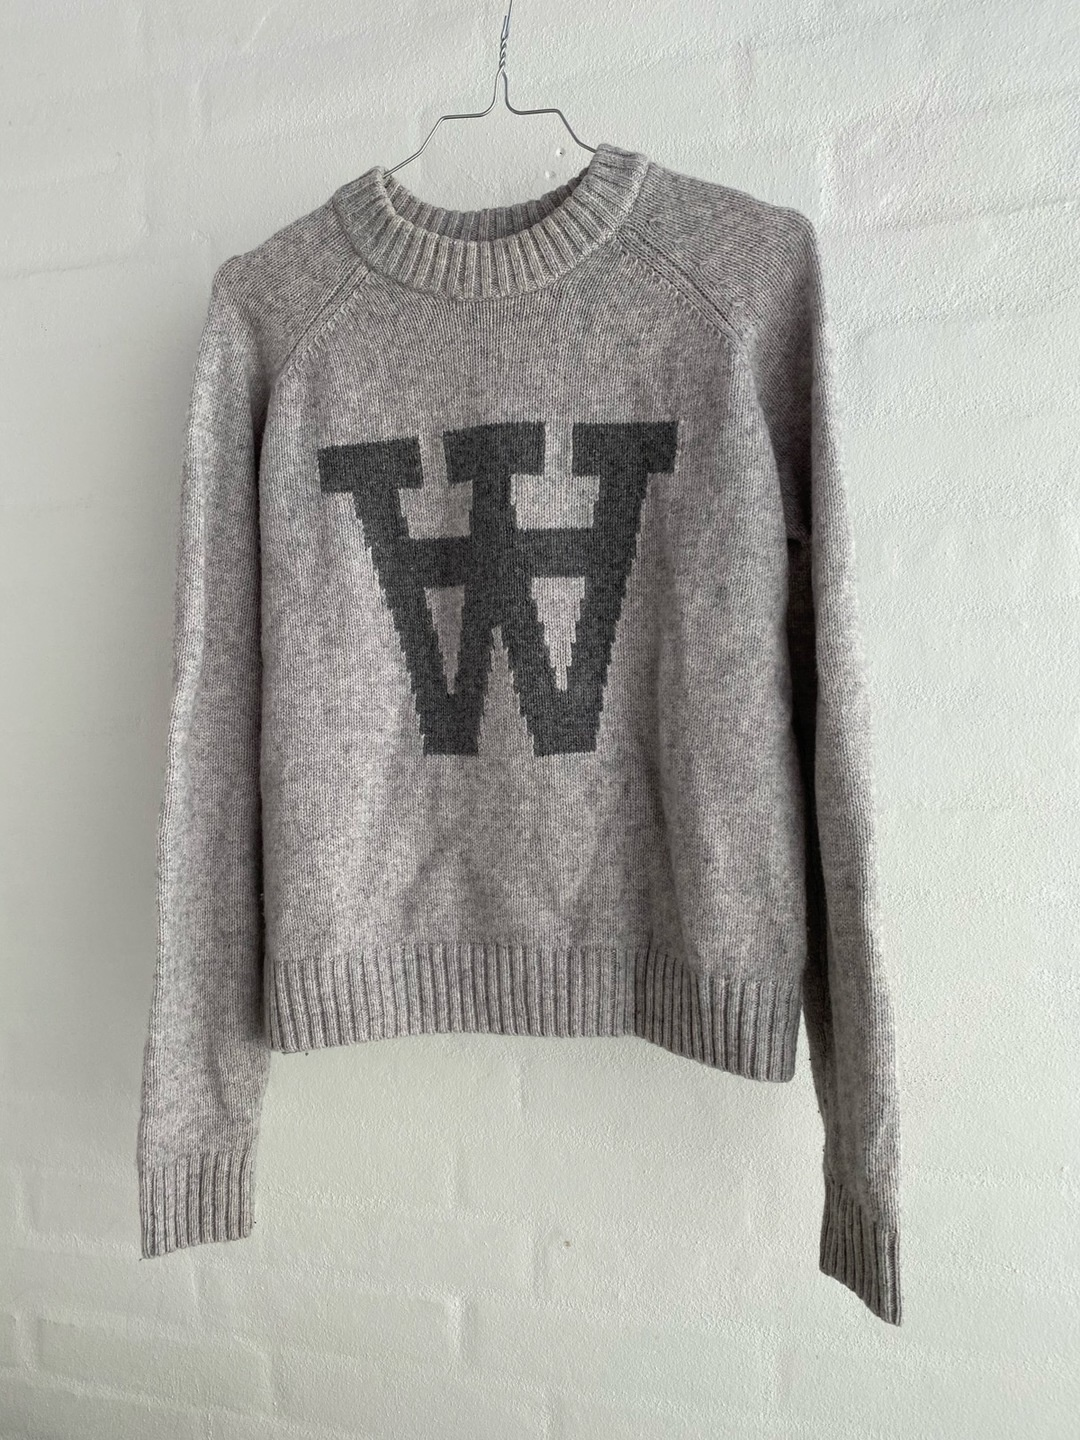 Women's jumpers & cardigans - WOOD WOOD photo 1